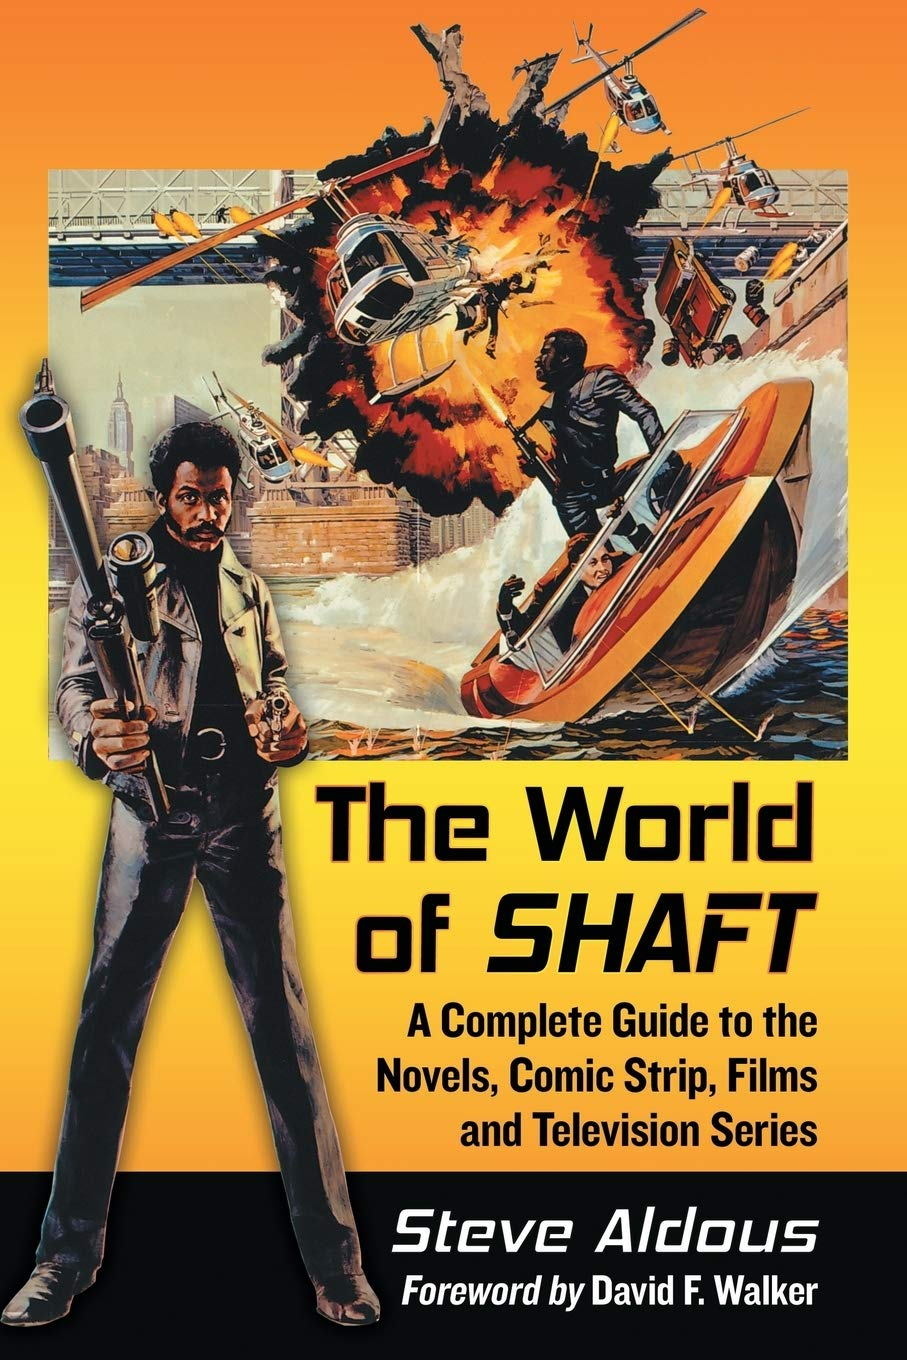 The World of Shaft: A Complete Guide to the Novels, Comic Strip, Films and  Television Series: Amazon.co.uk: Steve Aldous: 9780786499236: Books